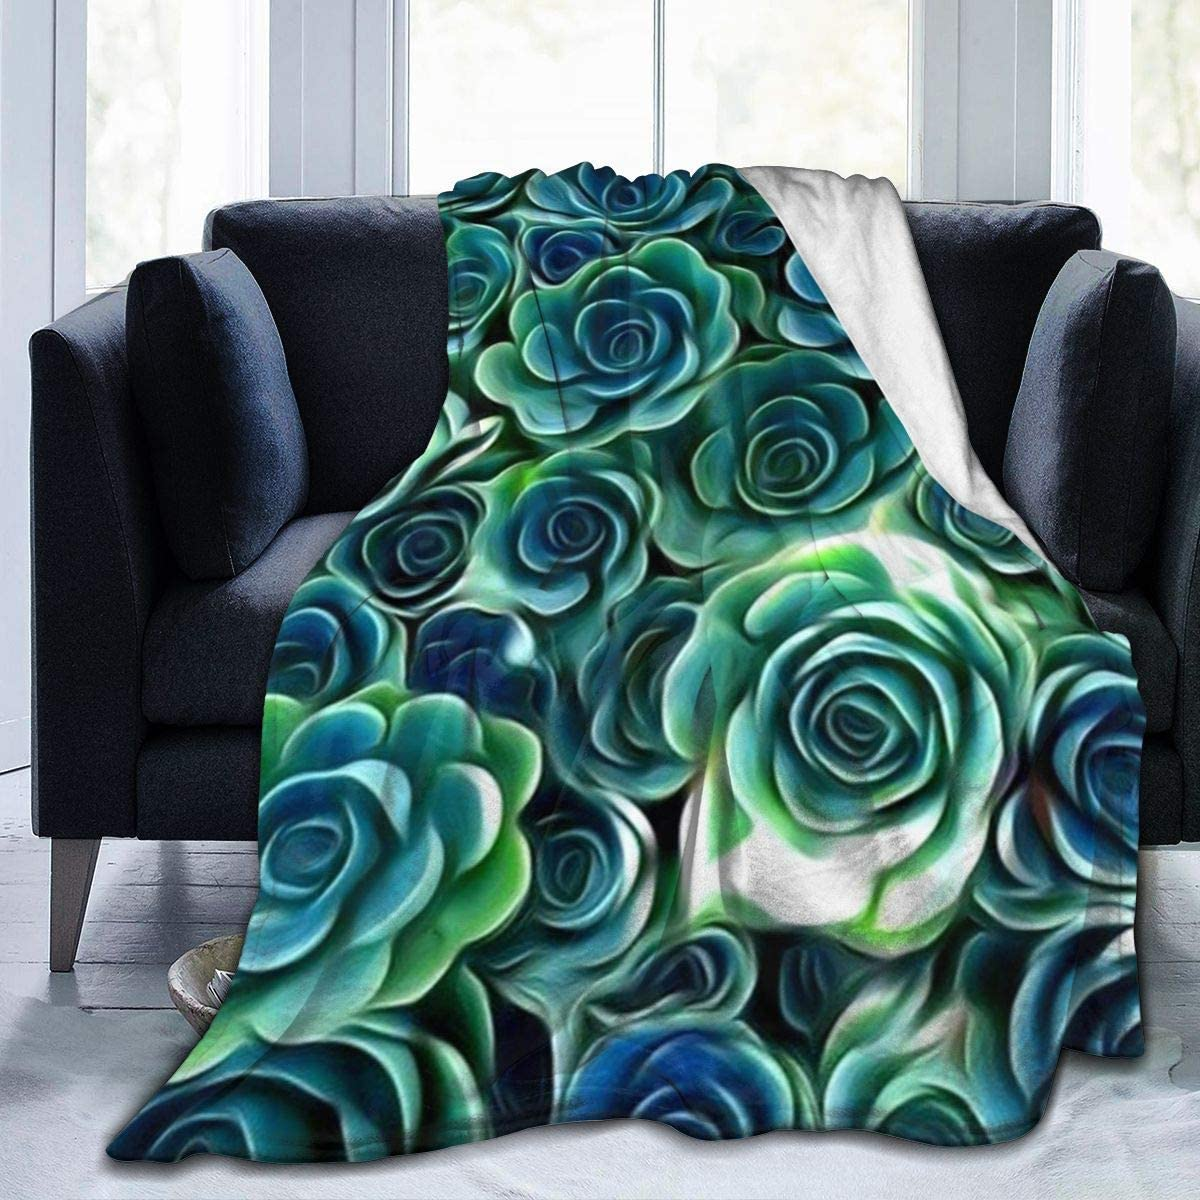 Ultra-Soft Warm Fleece Throw Comfortable Decorative Ligh Blanket NEW New sales before selling